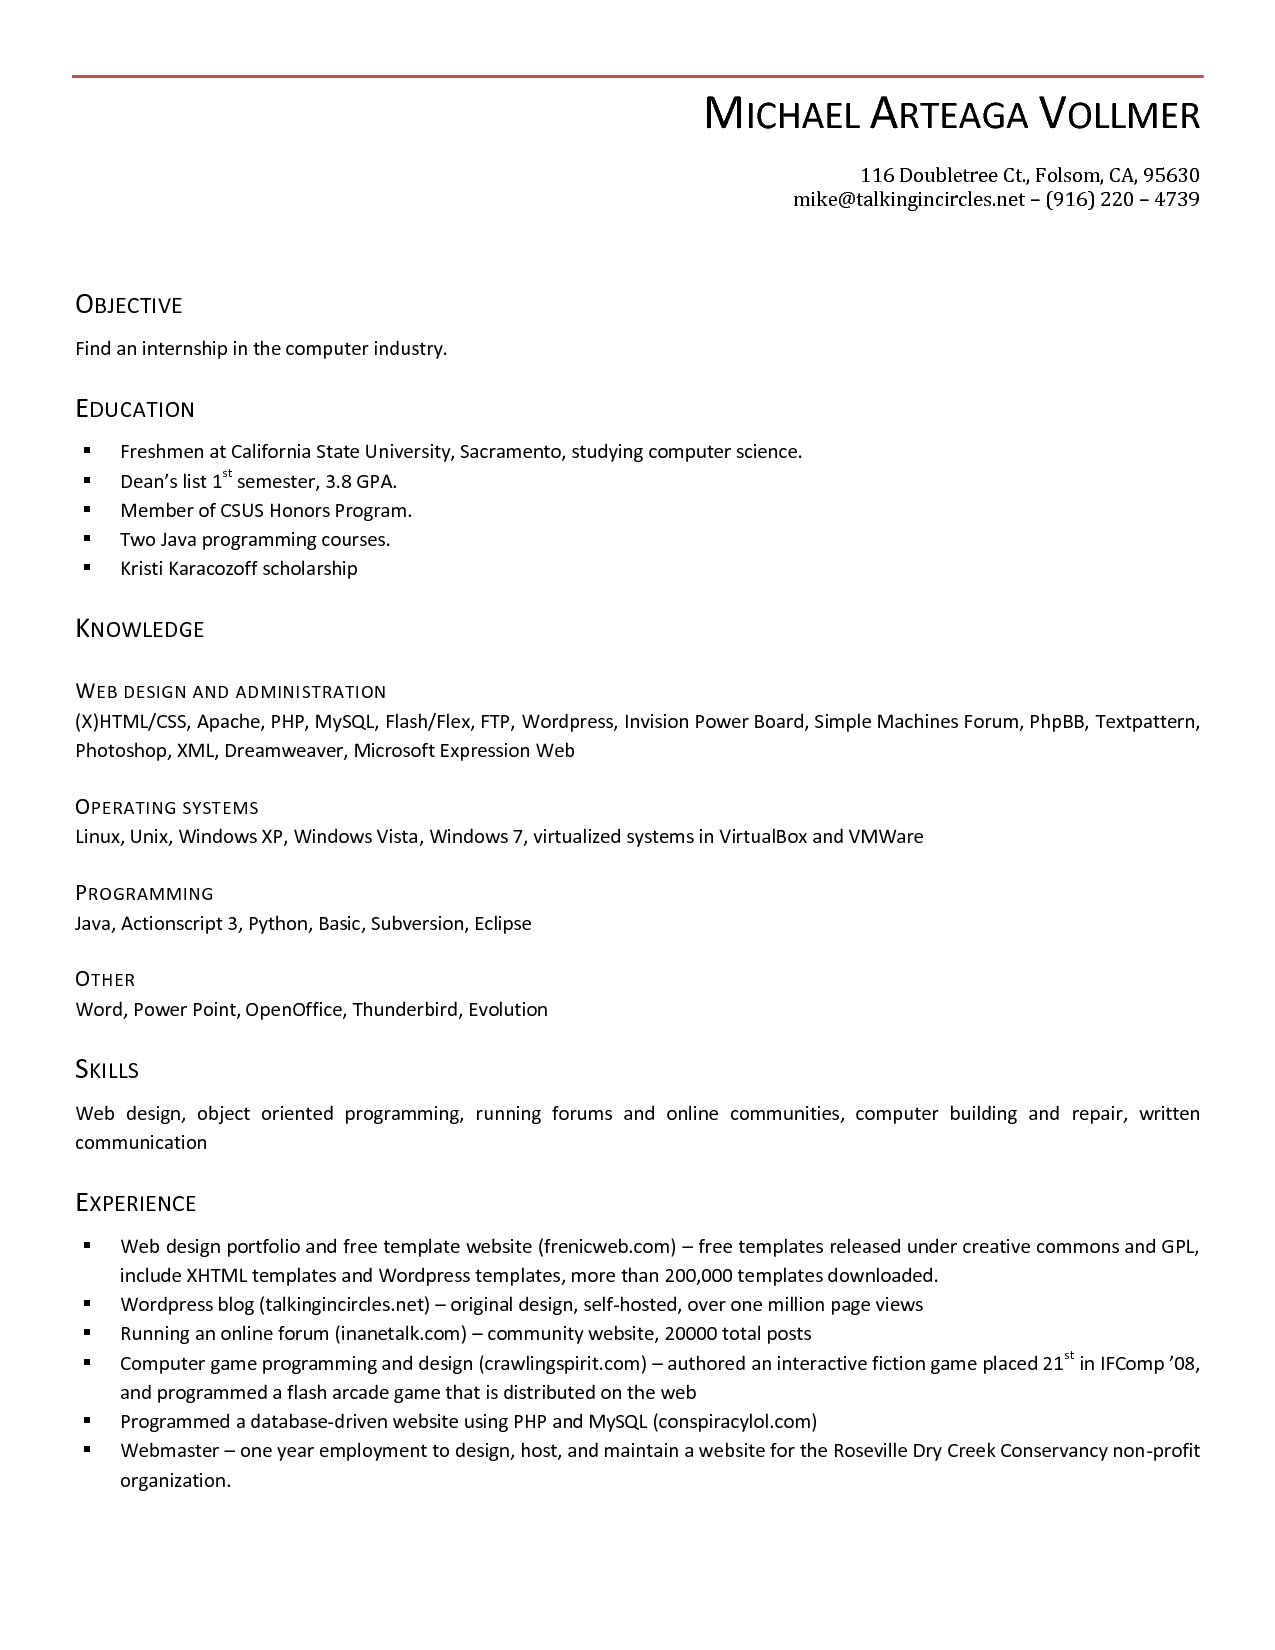 Resume templates for openoffice hdresume templates cover letter resume templates for openoffice hdresume templates cover letter examples fbccfo Images